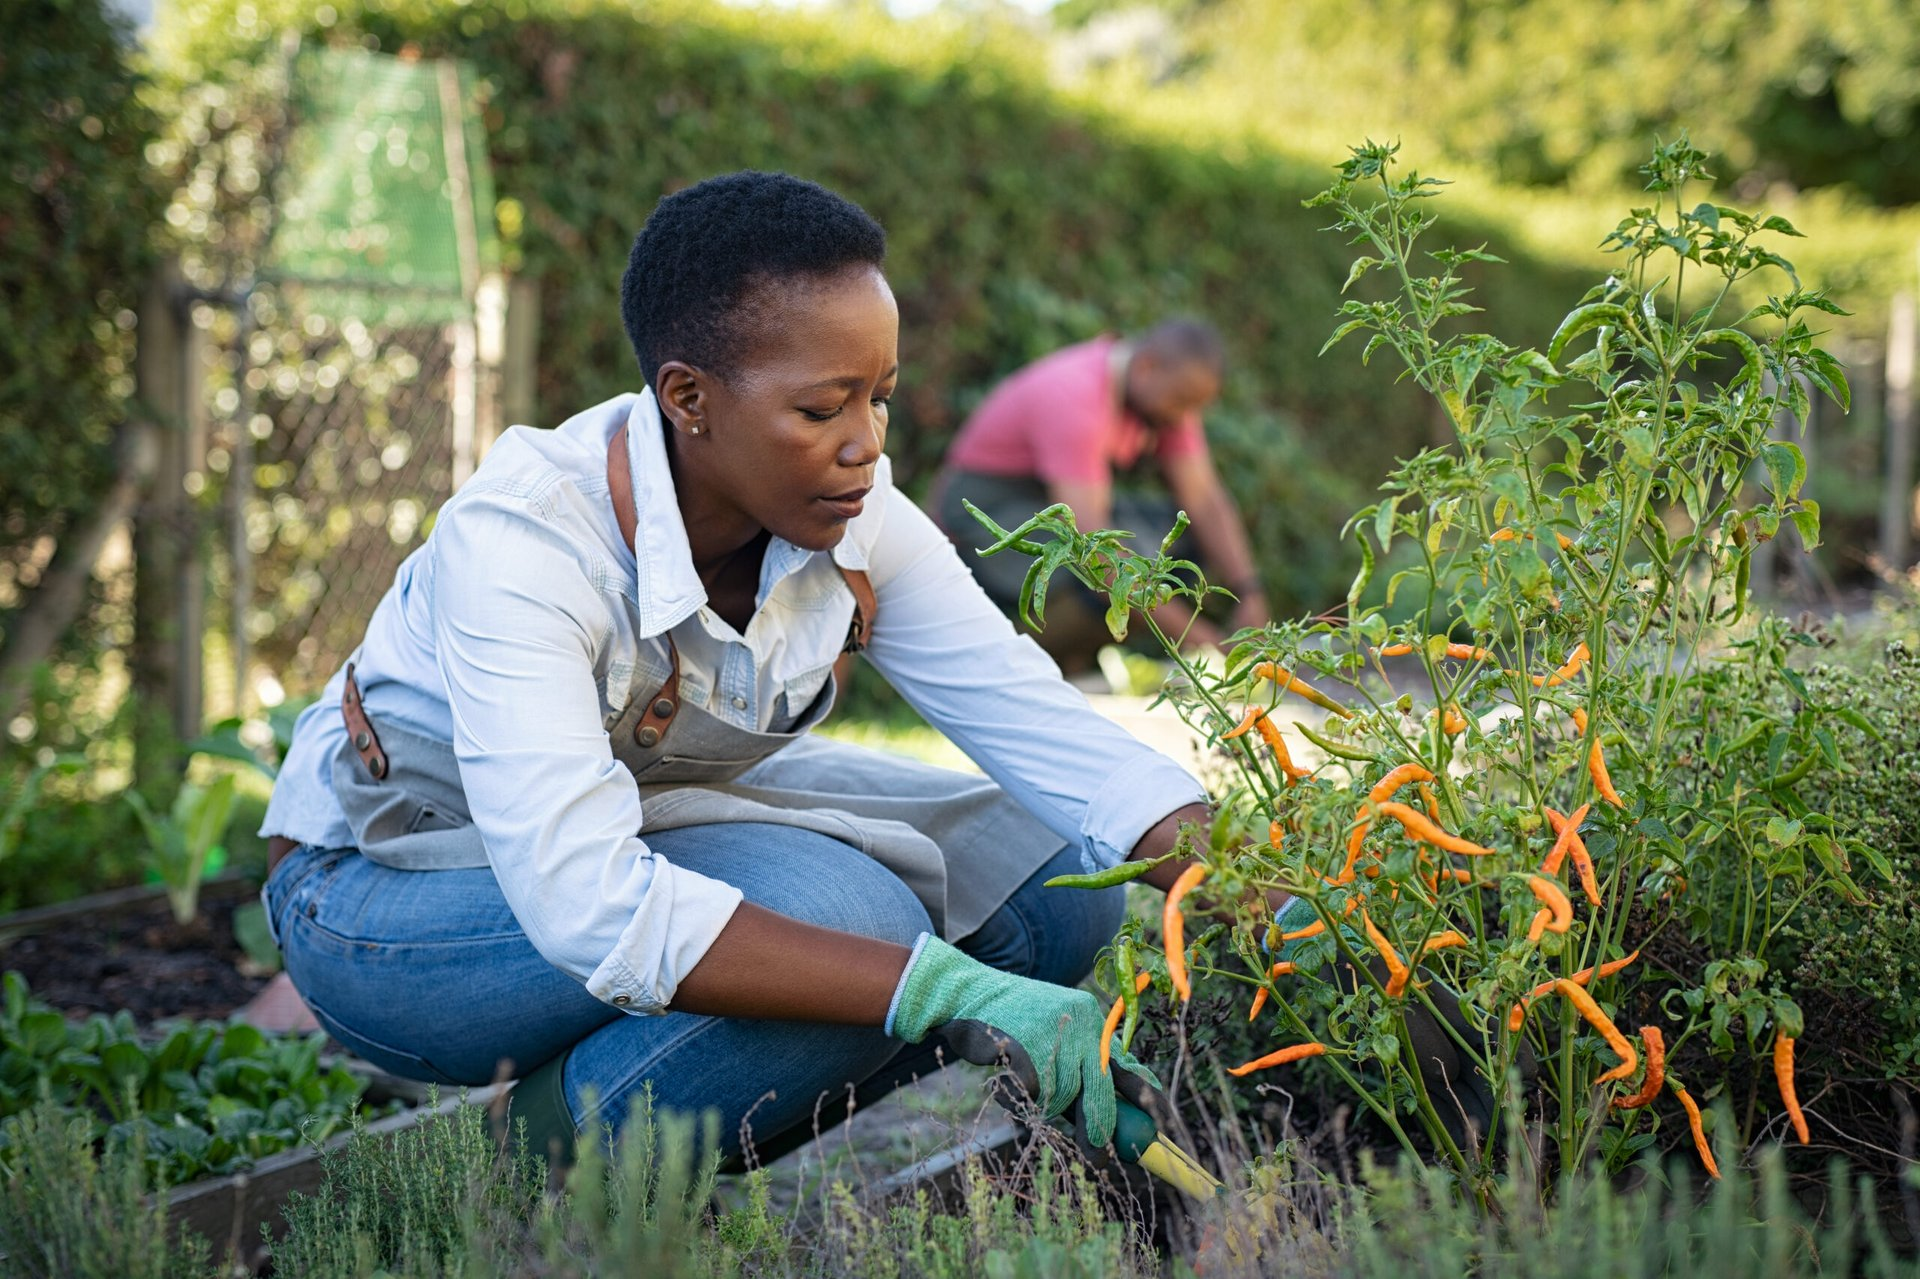 Woman tending to peppers in a vegetable garden